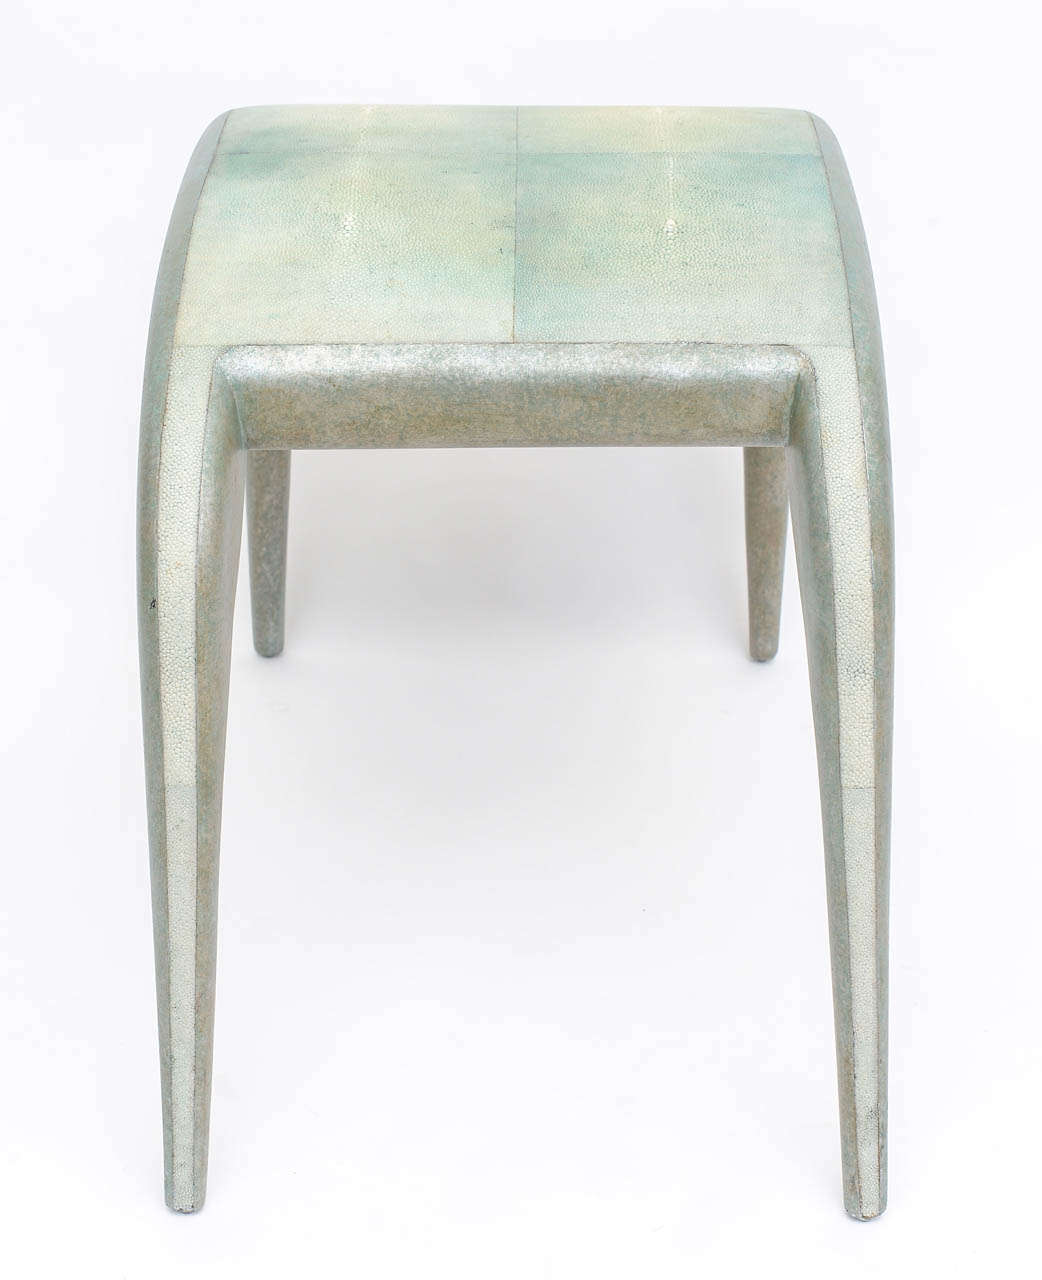 French Modern Shagreen Bench by R and Y Augousti In Excellent Condition For Sale In Miami, FL